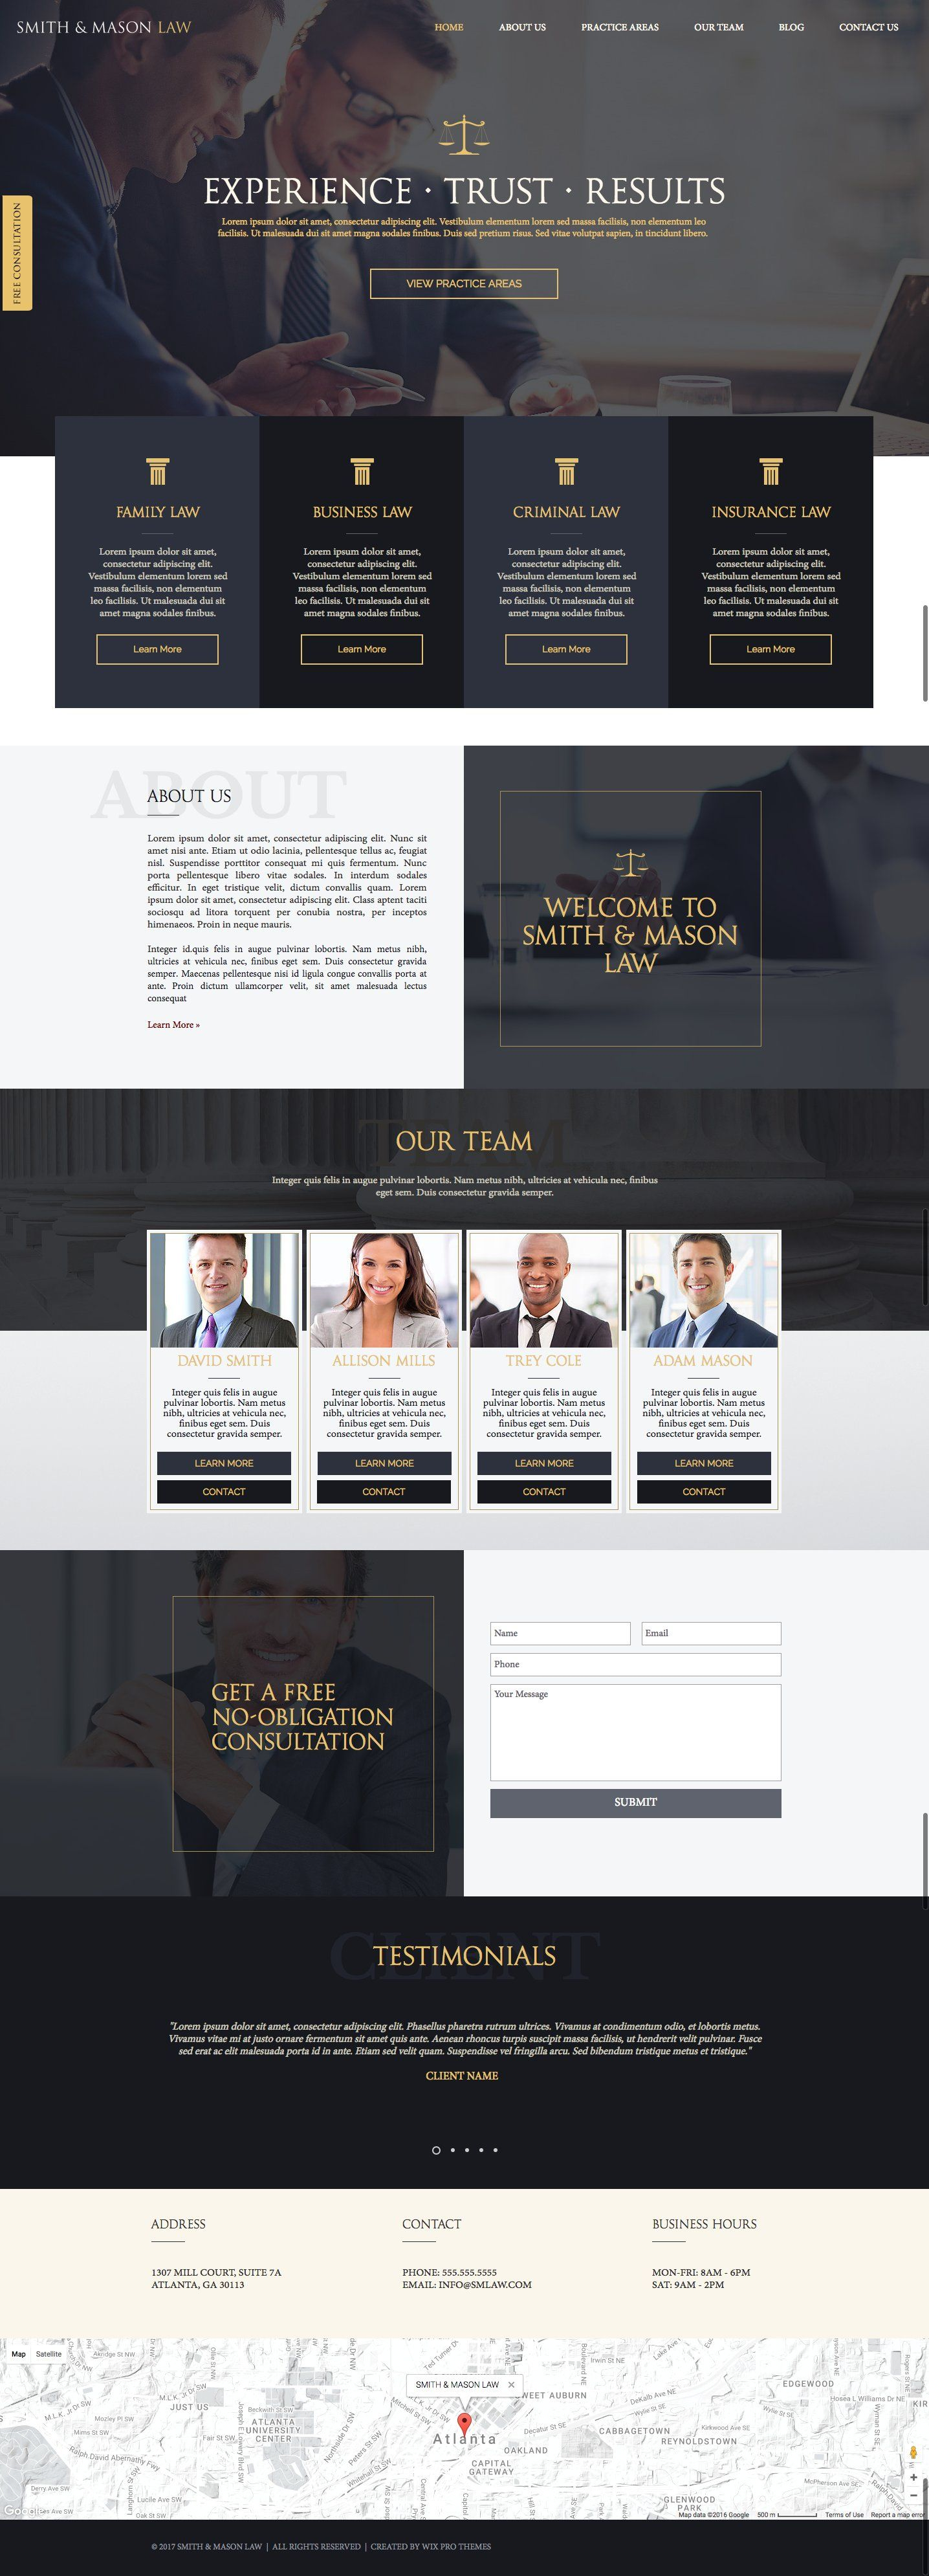 Law Firm Website Template Law Firm Website Lawyer Website Design Law Firm Website Design